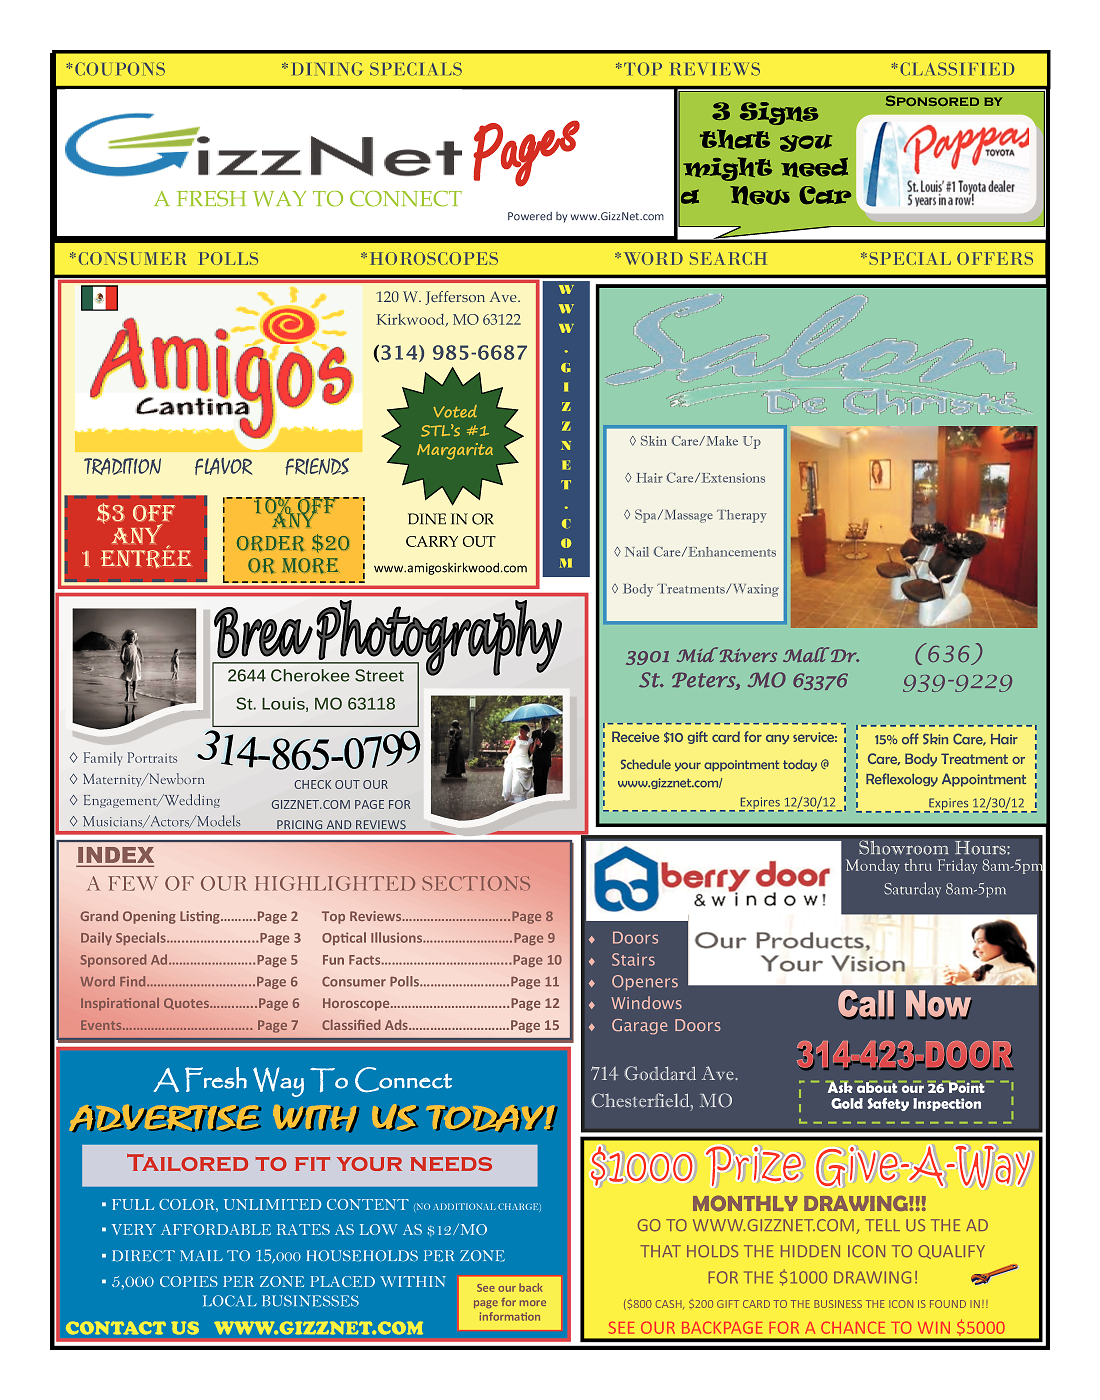 Advertising And Coupons 01 Gizznet Pages 16 Pages, Full Color